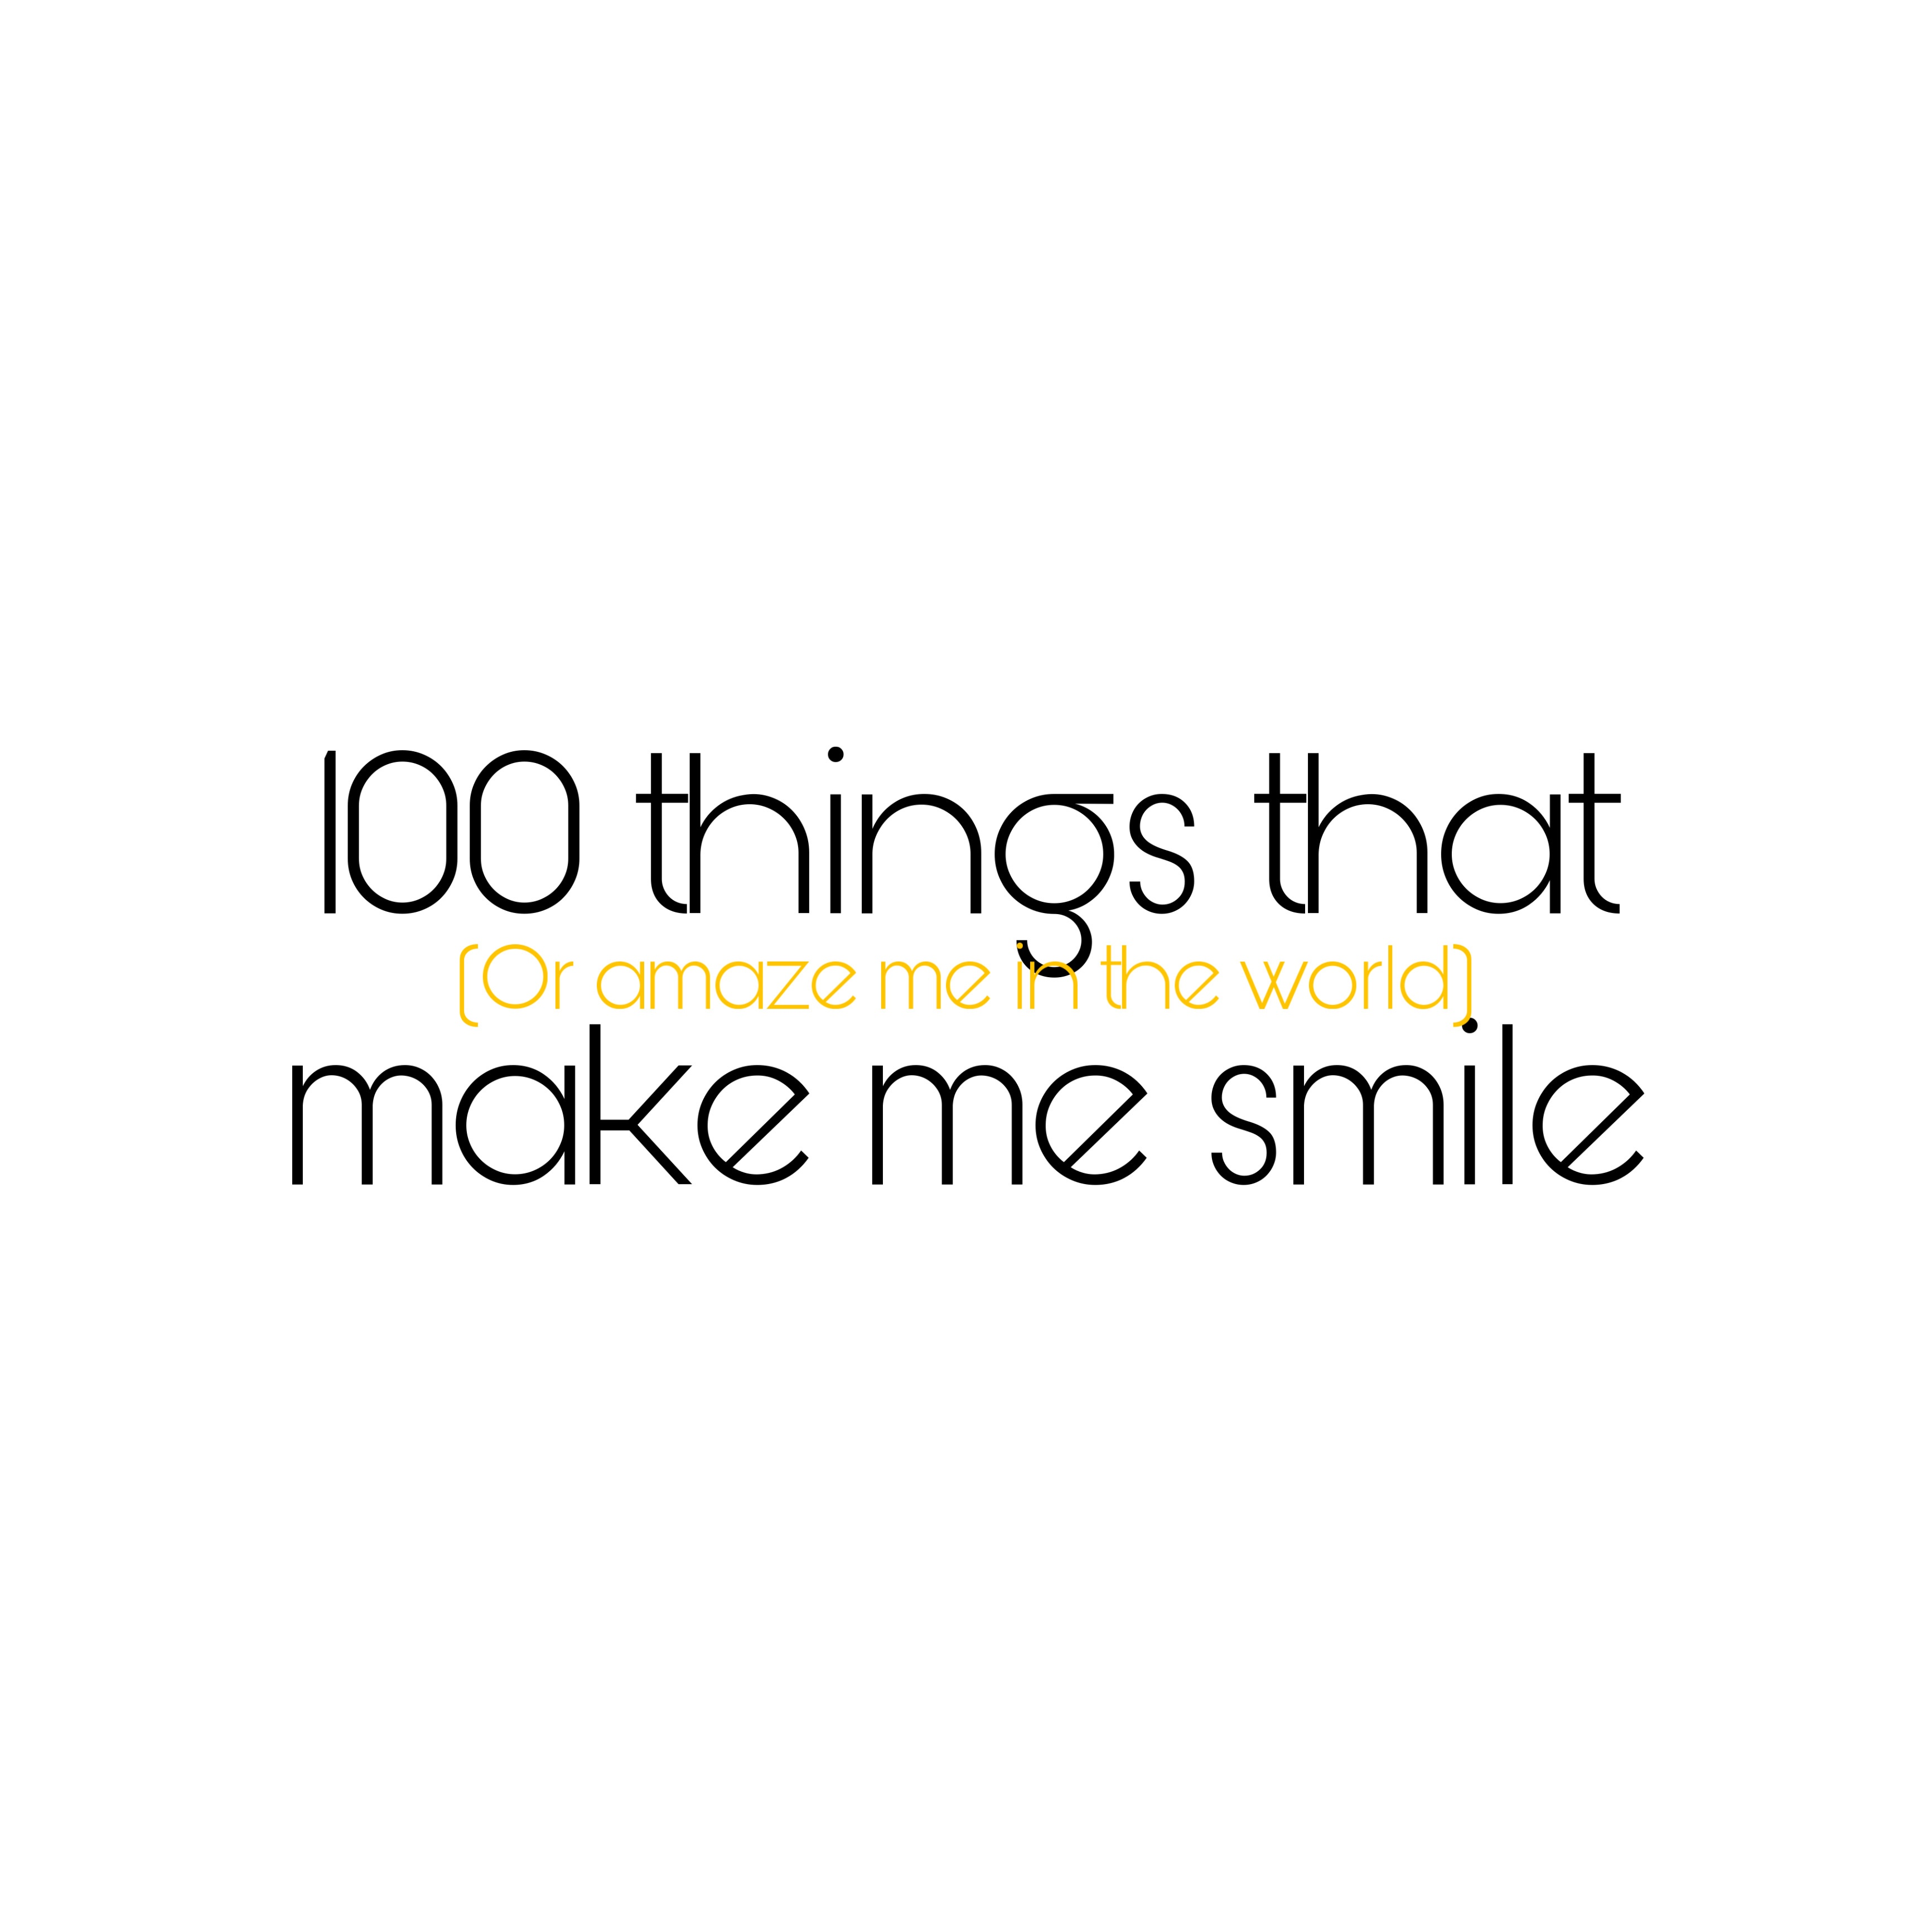 100 things that make me smile (or amaze me in the world)